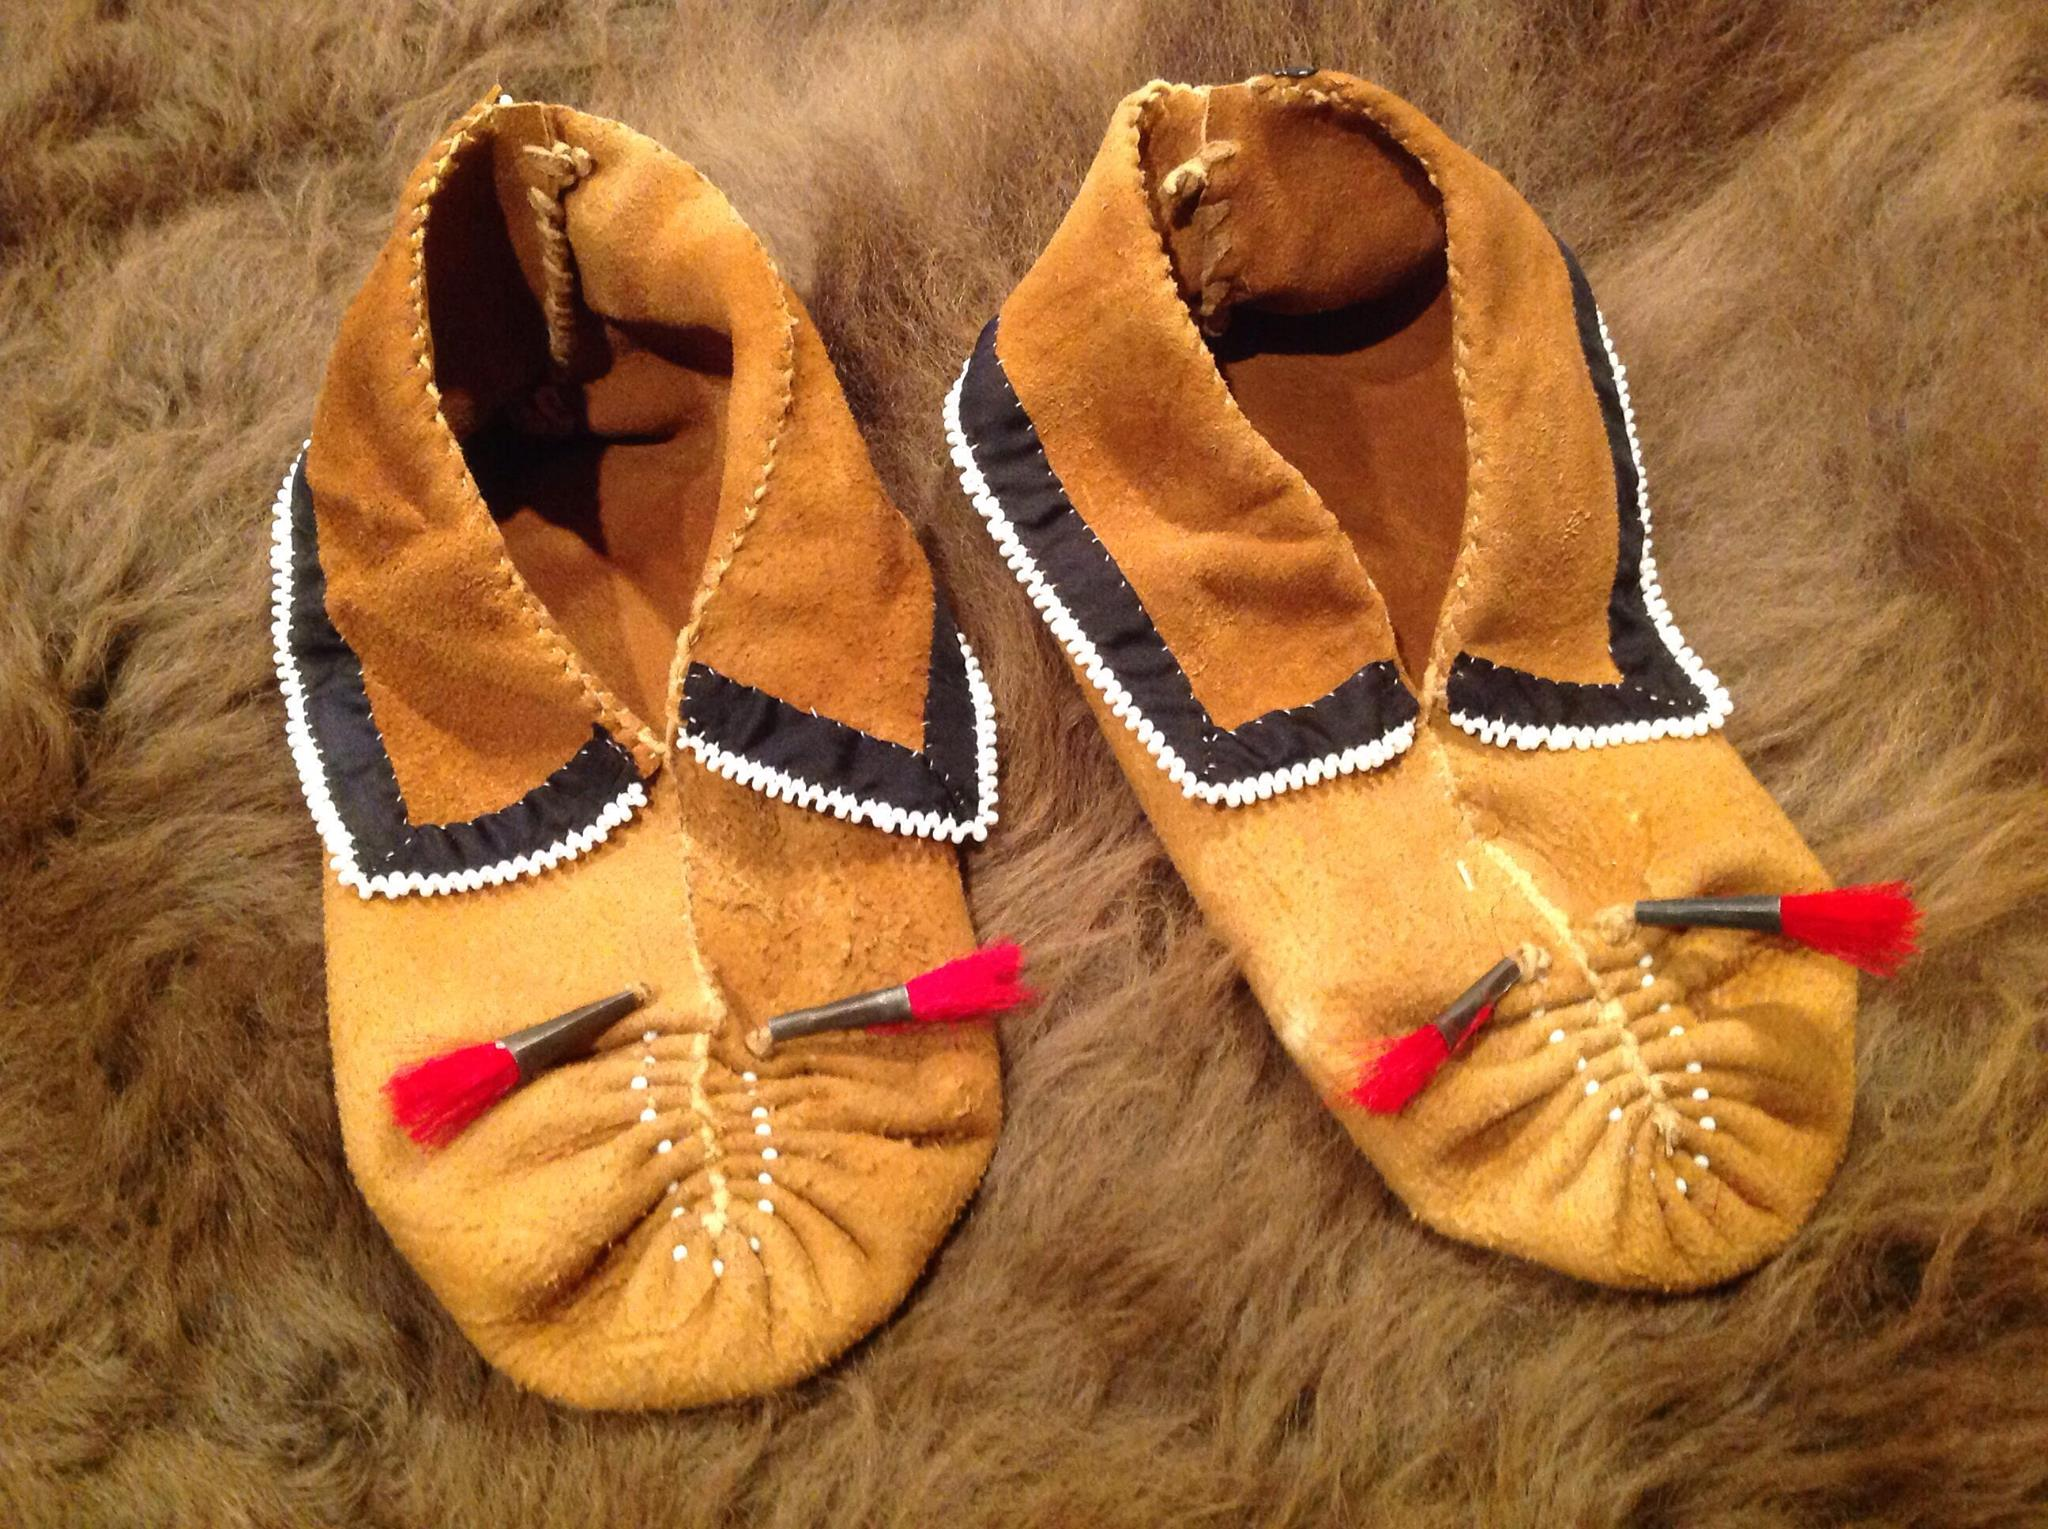 Some bigger thoughts on moccasins